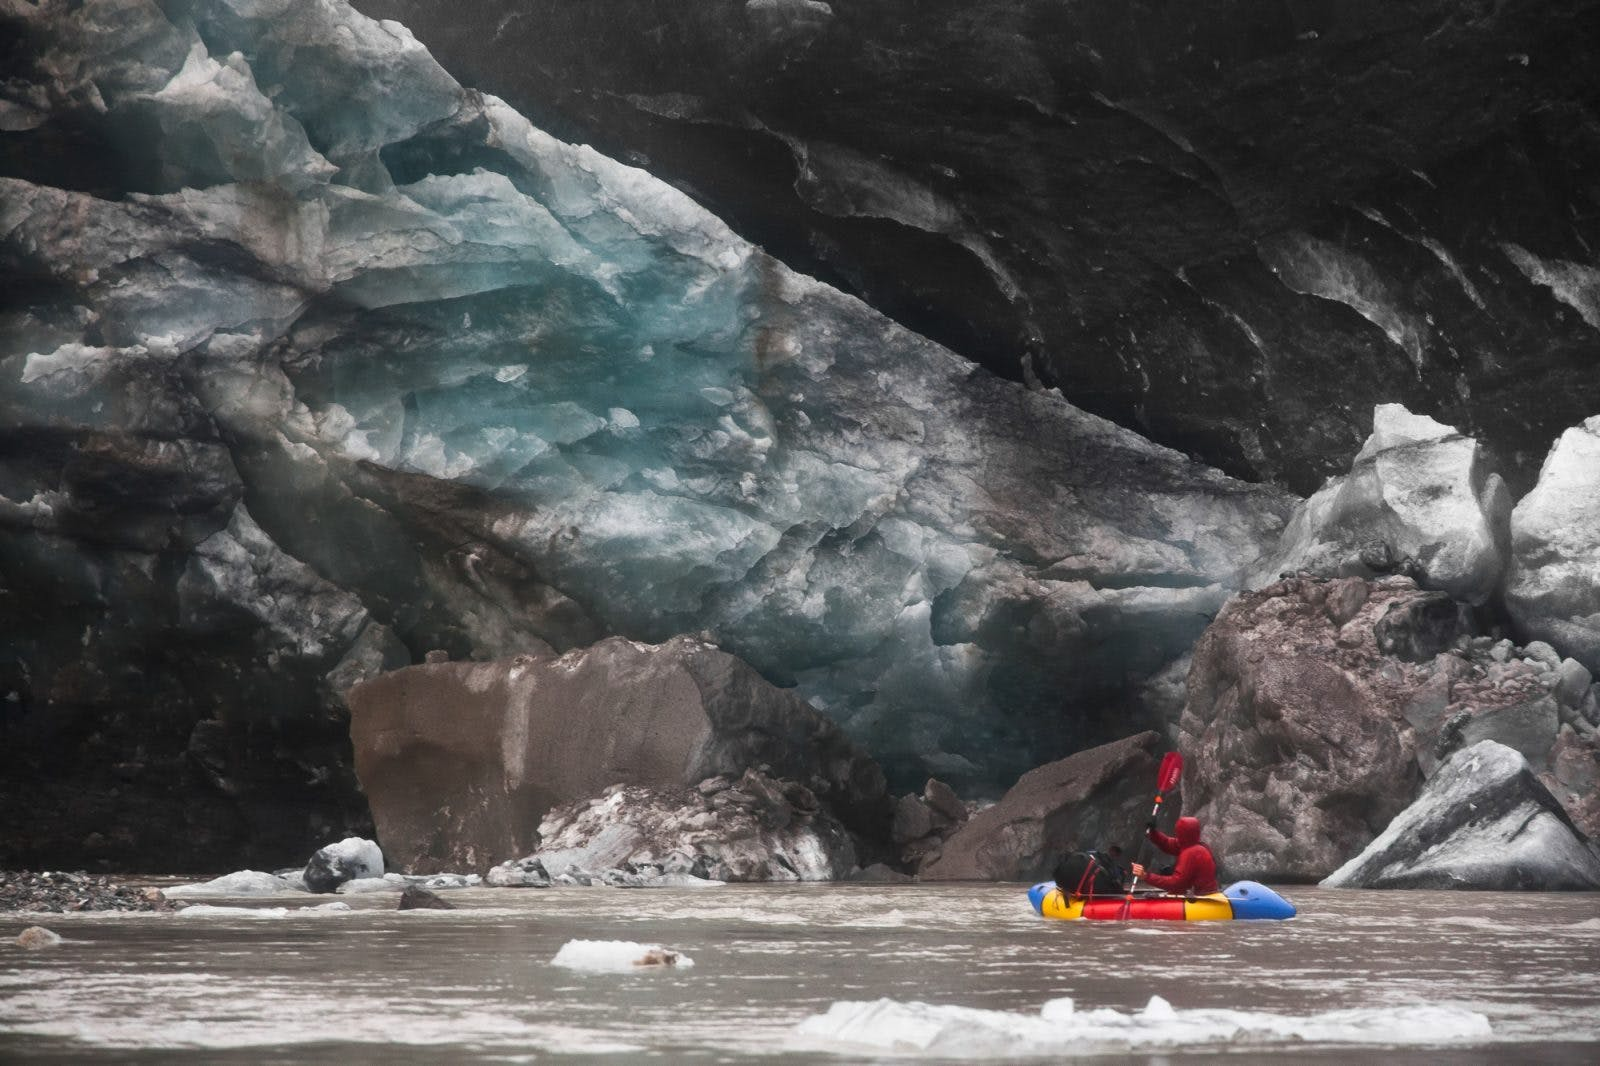 Luc Mehl paddling in the ice. Photo by Graham Kraft.